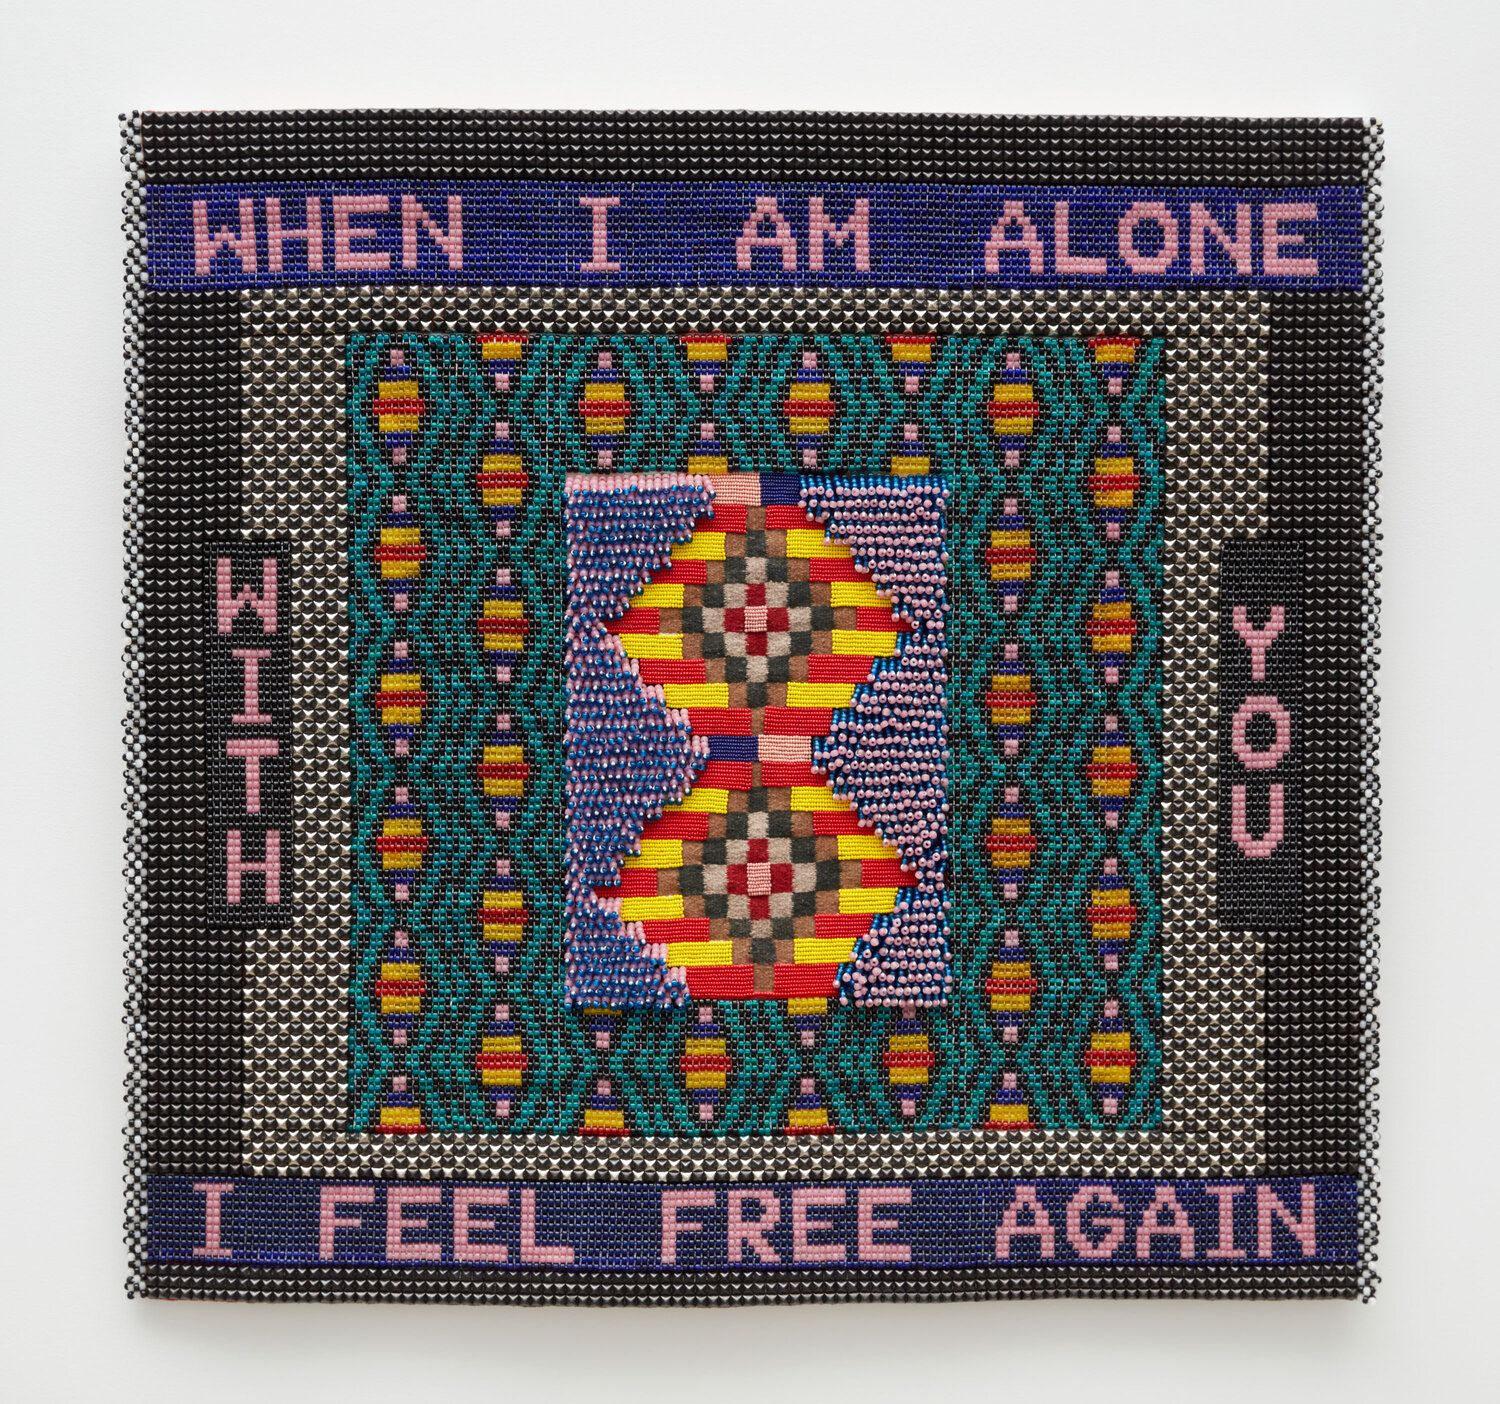 Jeffrey Gibson, WHEN I AM ALONE WITH YOU I FEEL FREE AGAIN, 2020, from